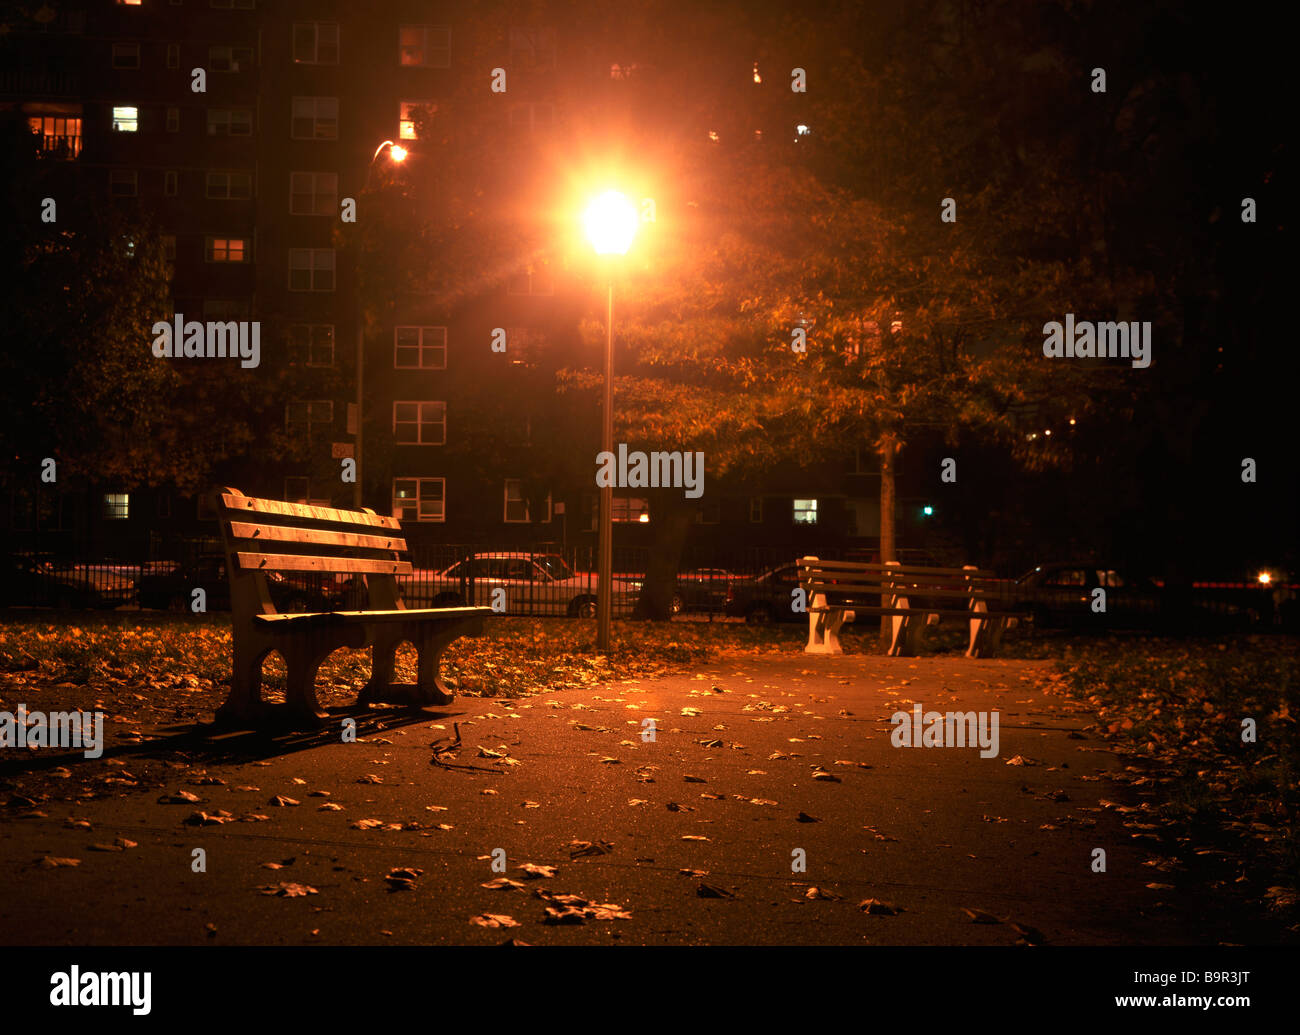 A deserted urban park at night Richard B Levine - Stock Image